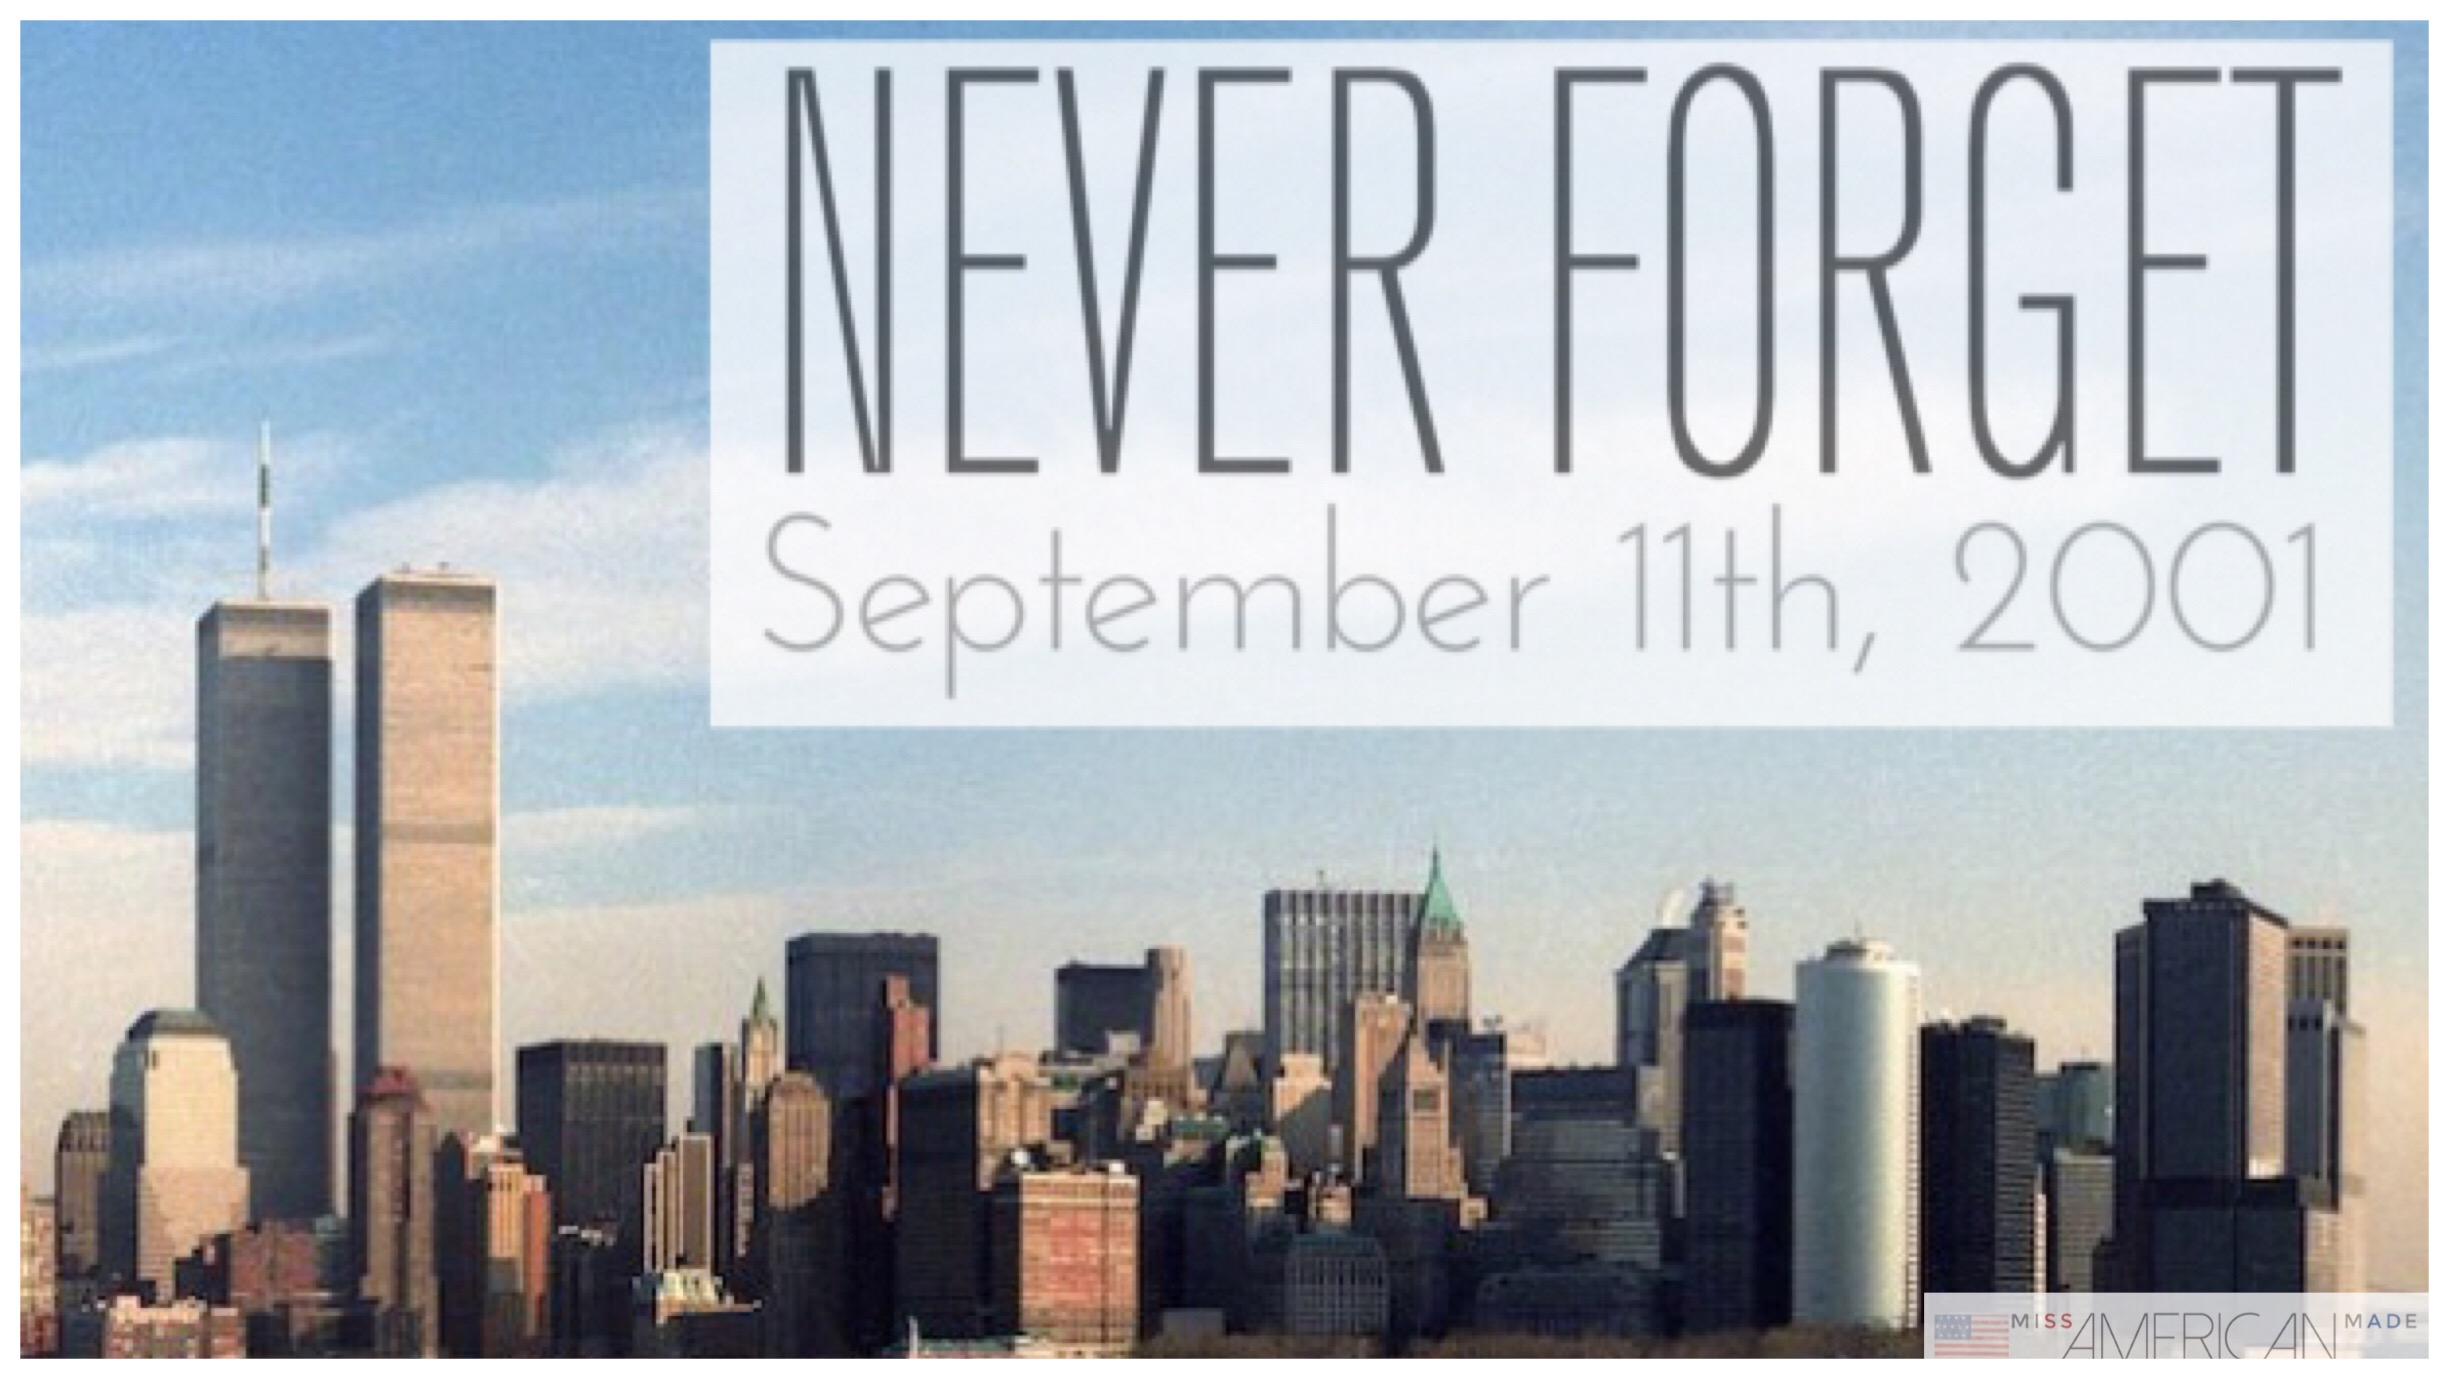 Never Forget September 11th, 2001 by Miss American Made